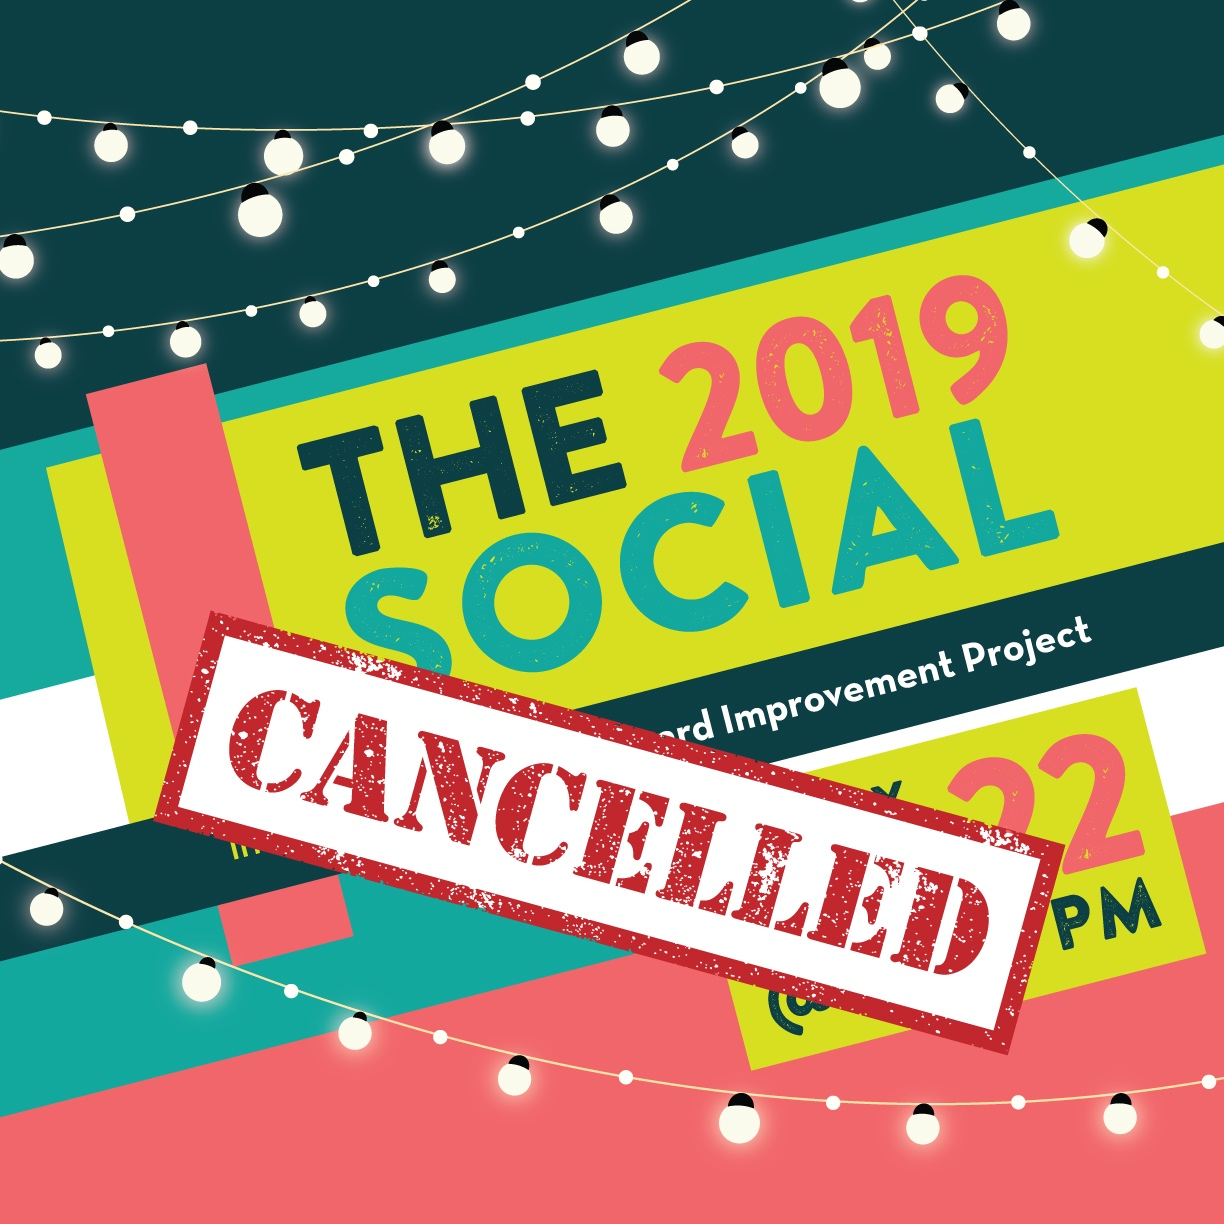 Clinton-Social-2019-square-cancelled.jpg